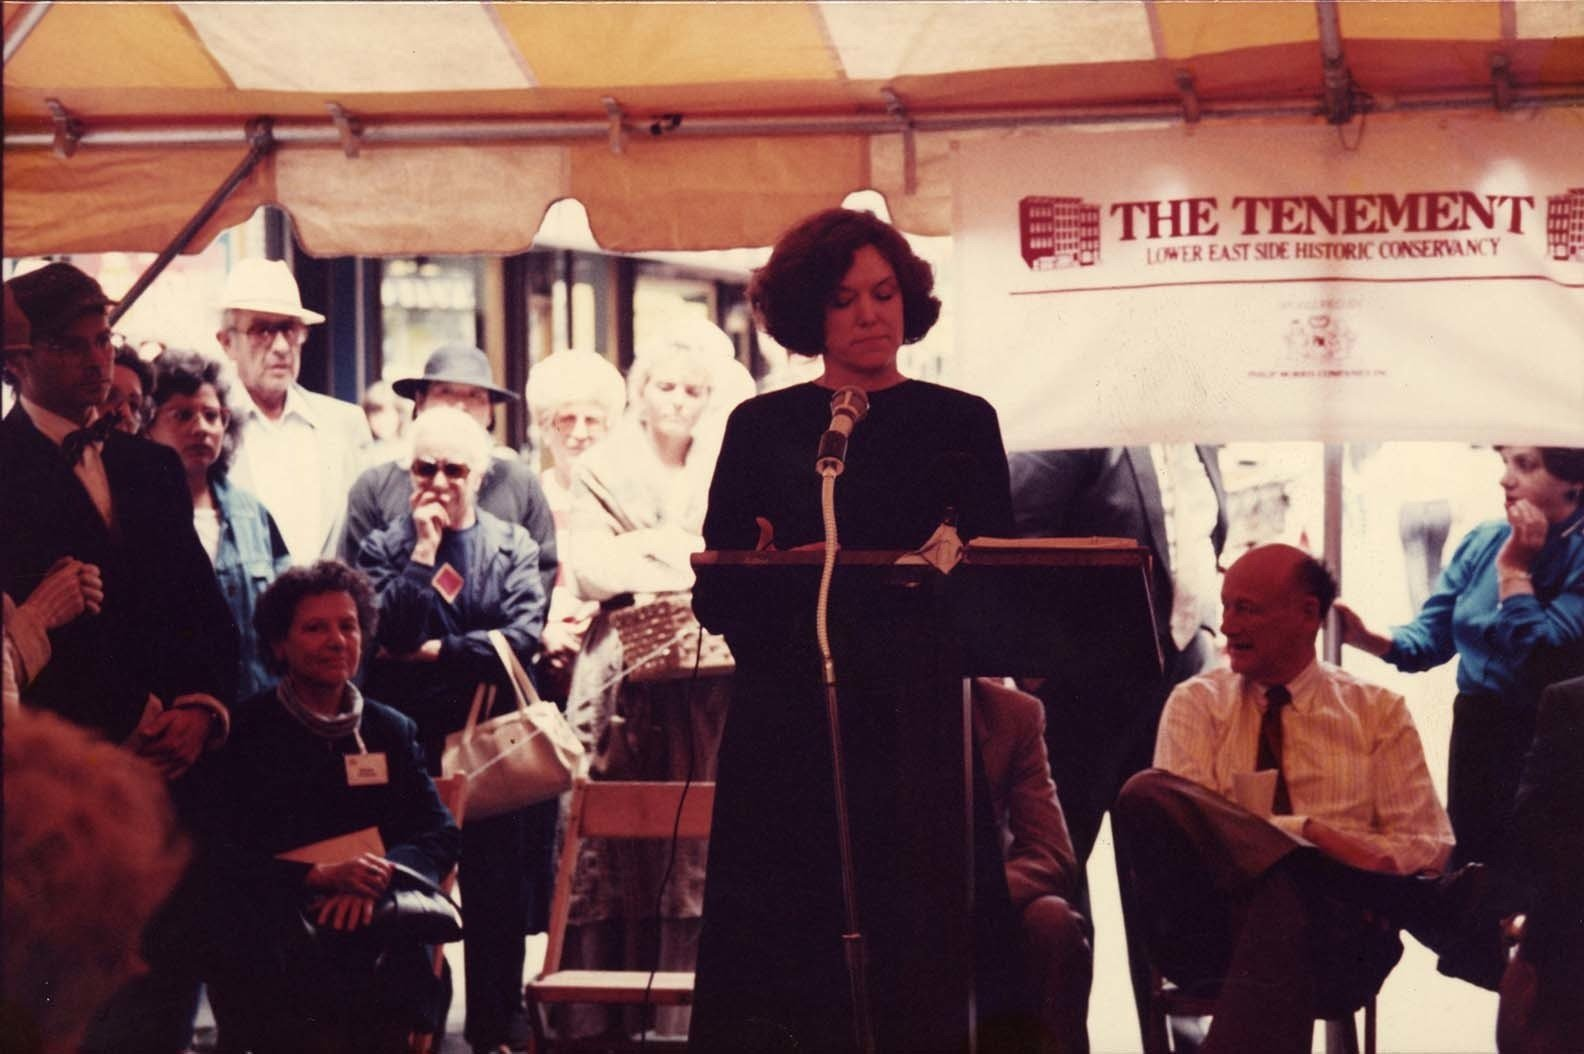 Co-founder of the Tenement Museum, Ruth Abram, stands at a podium giving a speech at a Lower East Side Historic Conservancy event.